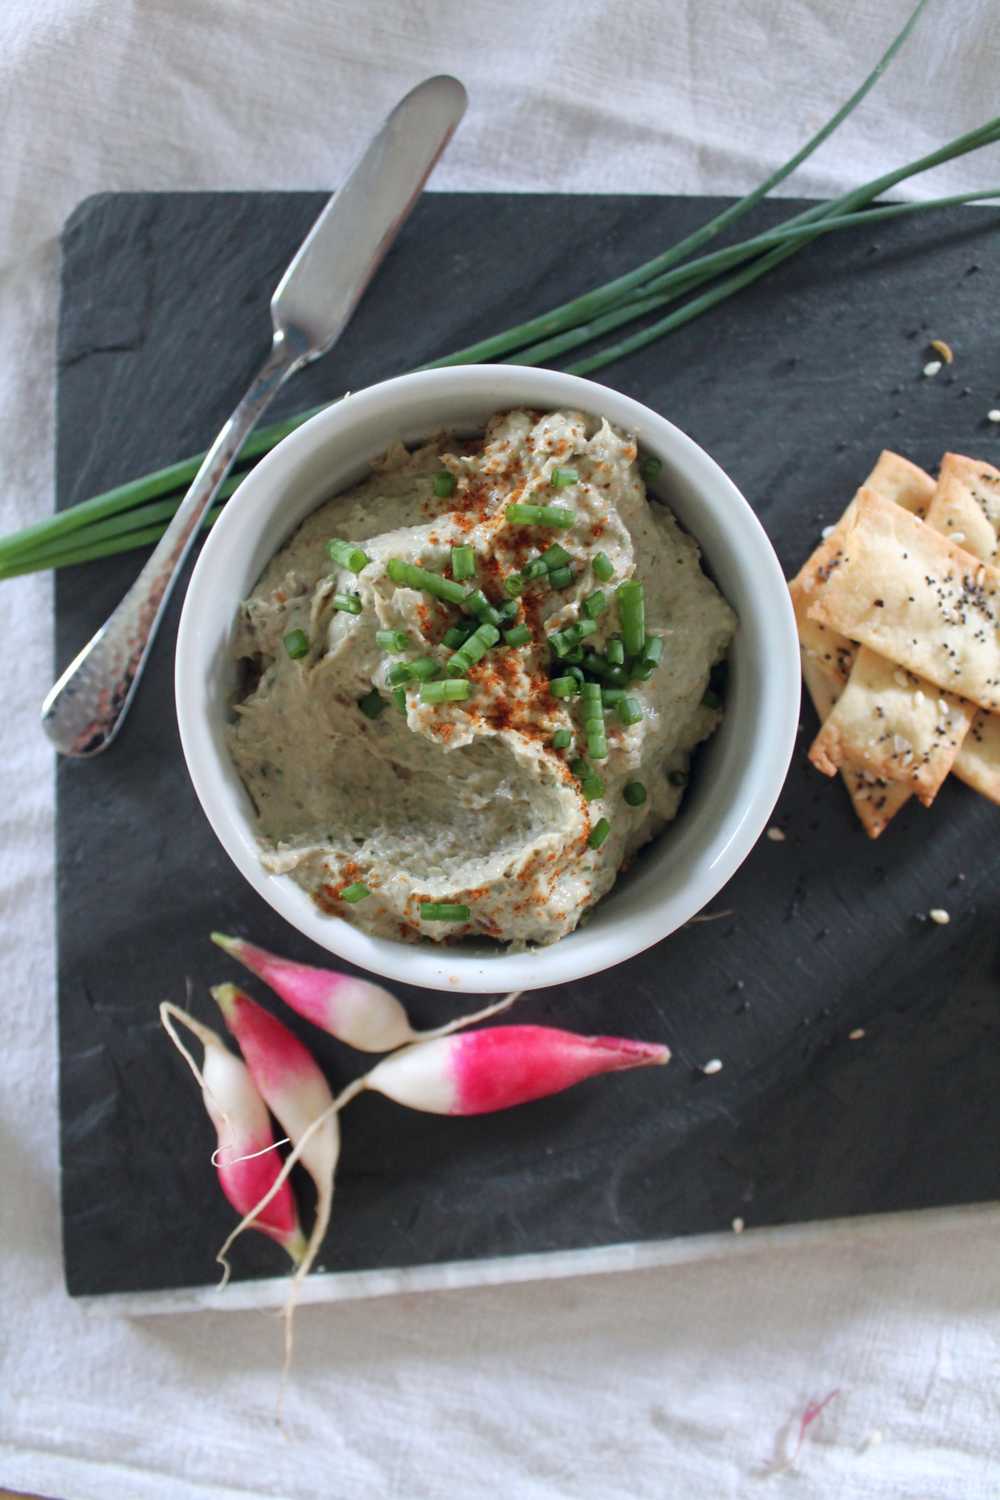 Smoked Bluefish Pate | www.hungryinlove.com